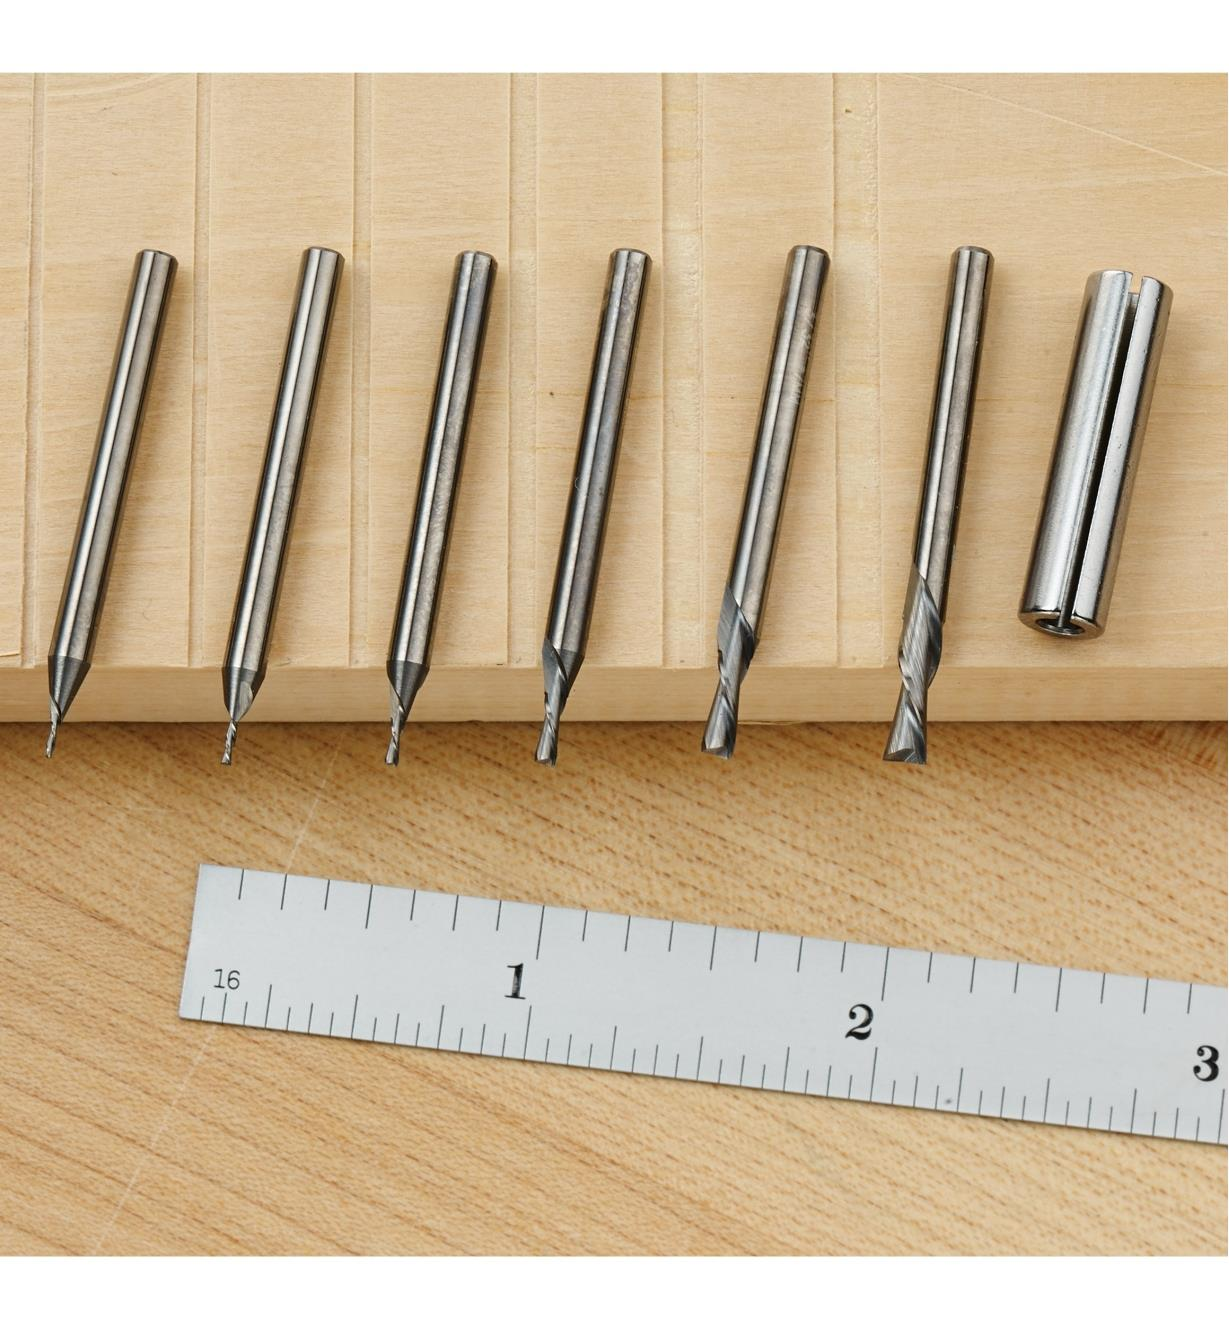 Mini Downcut Spiral Bits